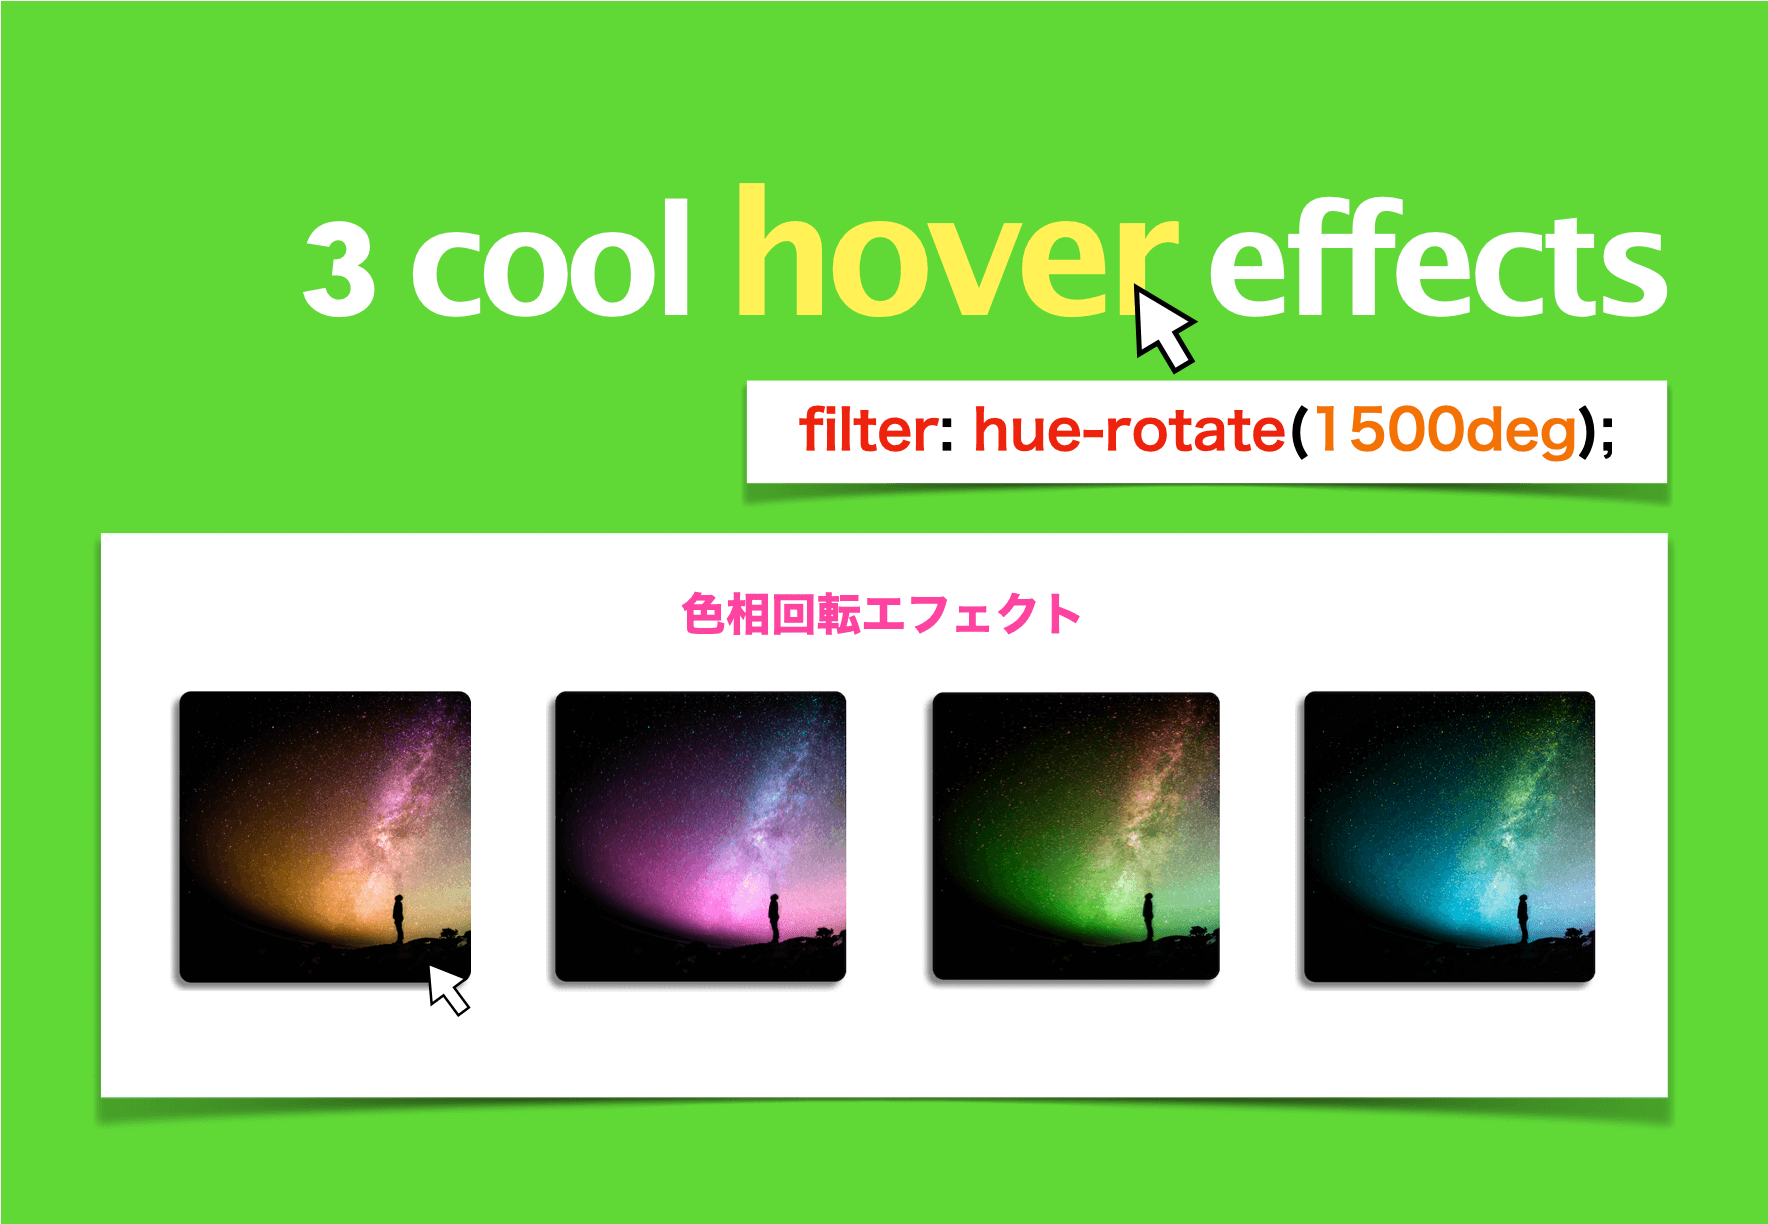 css-effects-hover-filter-hue-rotate.png